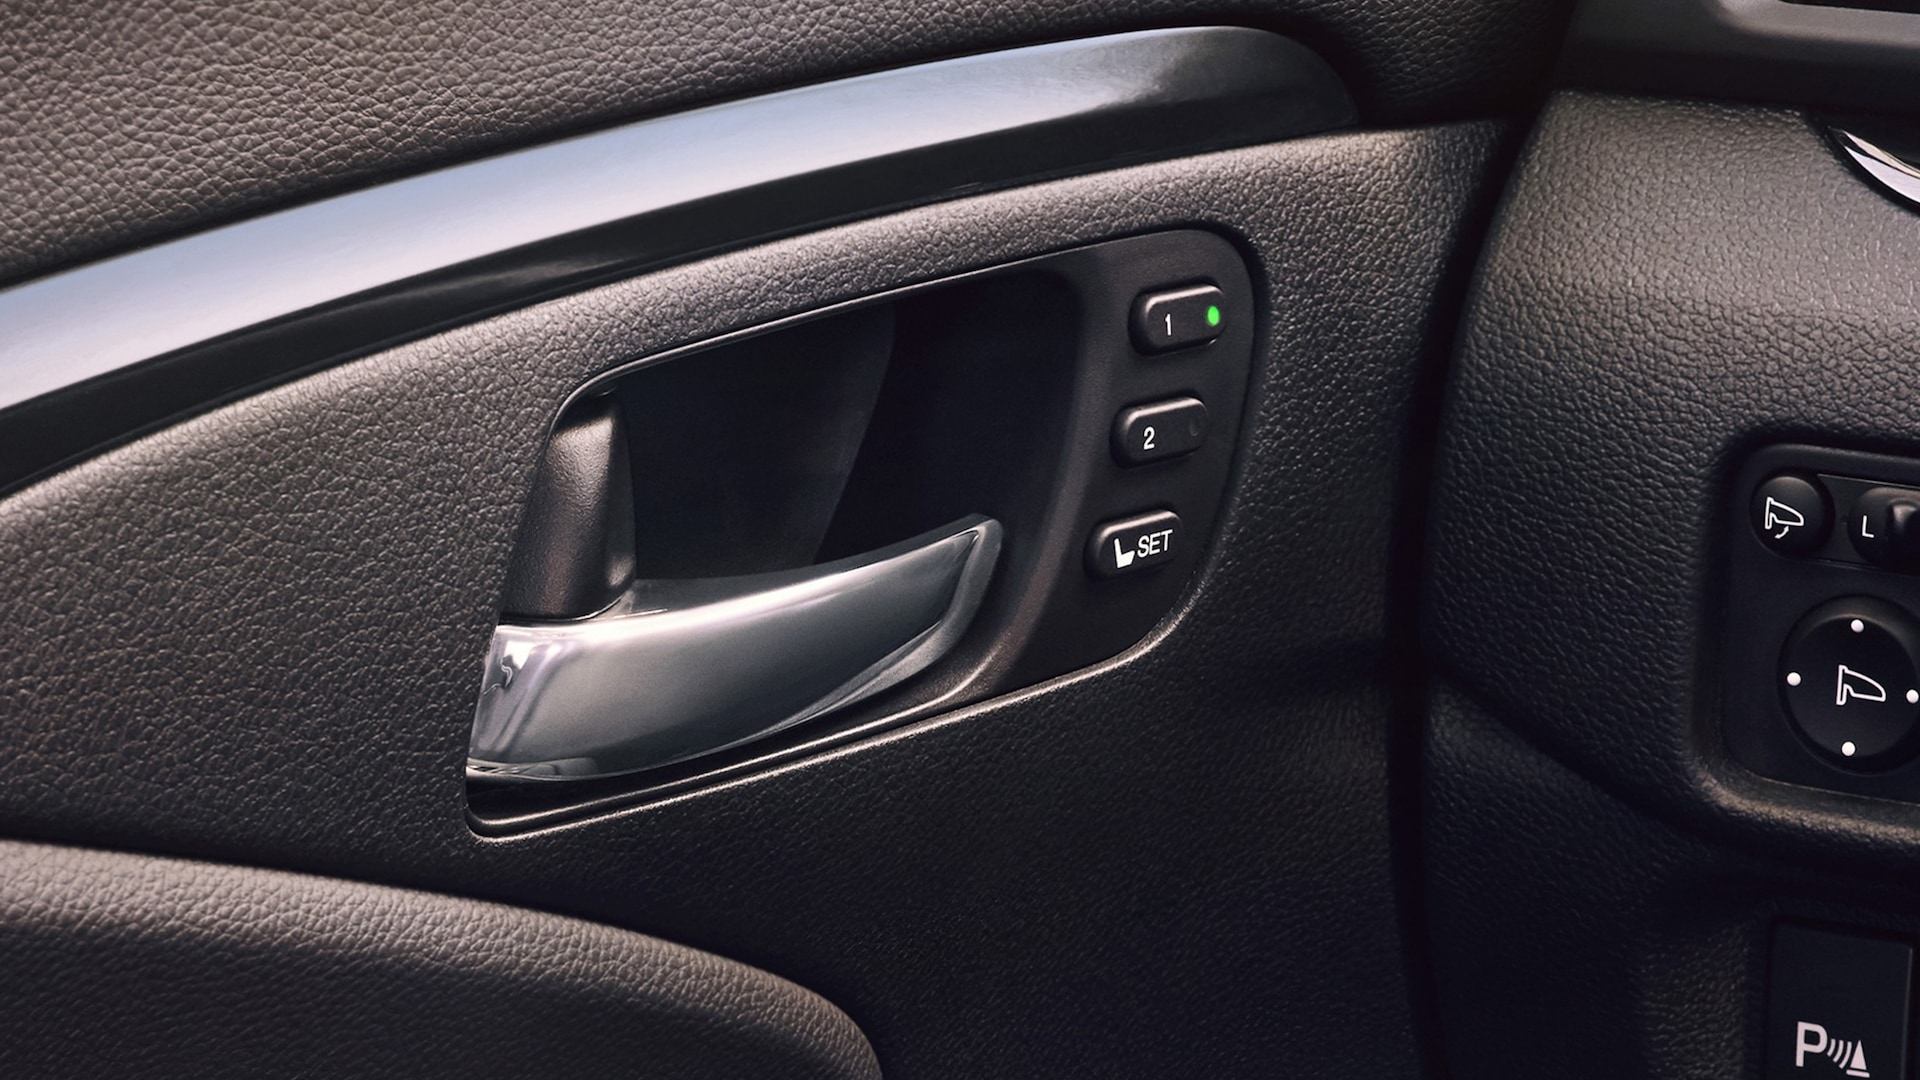 Driver's seat memory setting detail on the 2021 Honda Passport Elite with Black Leather interior.